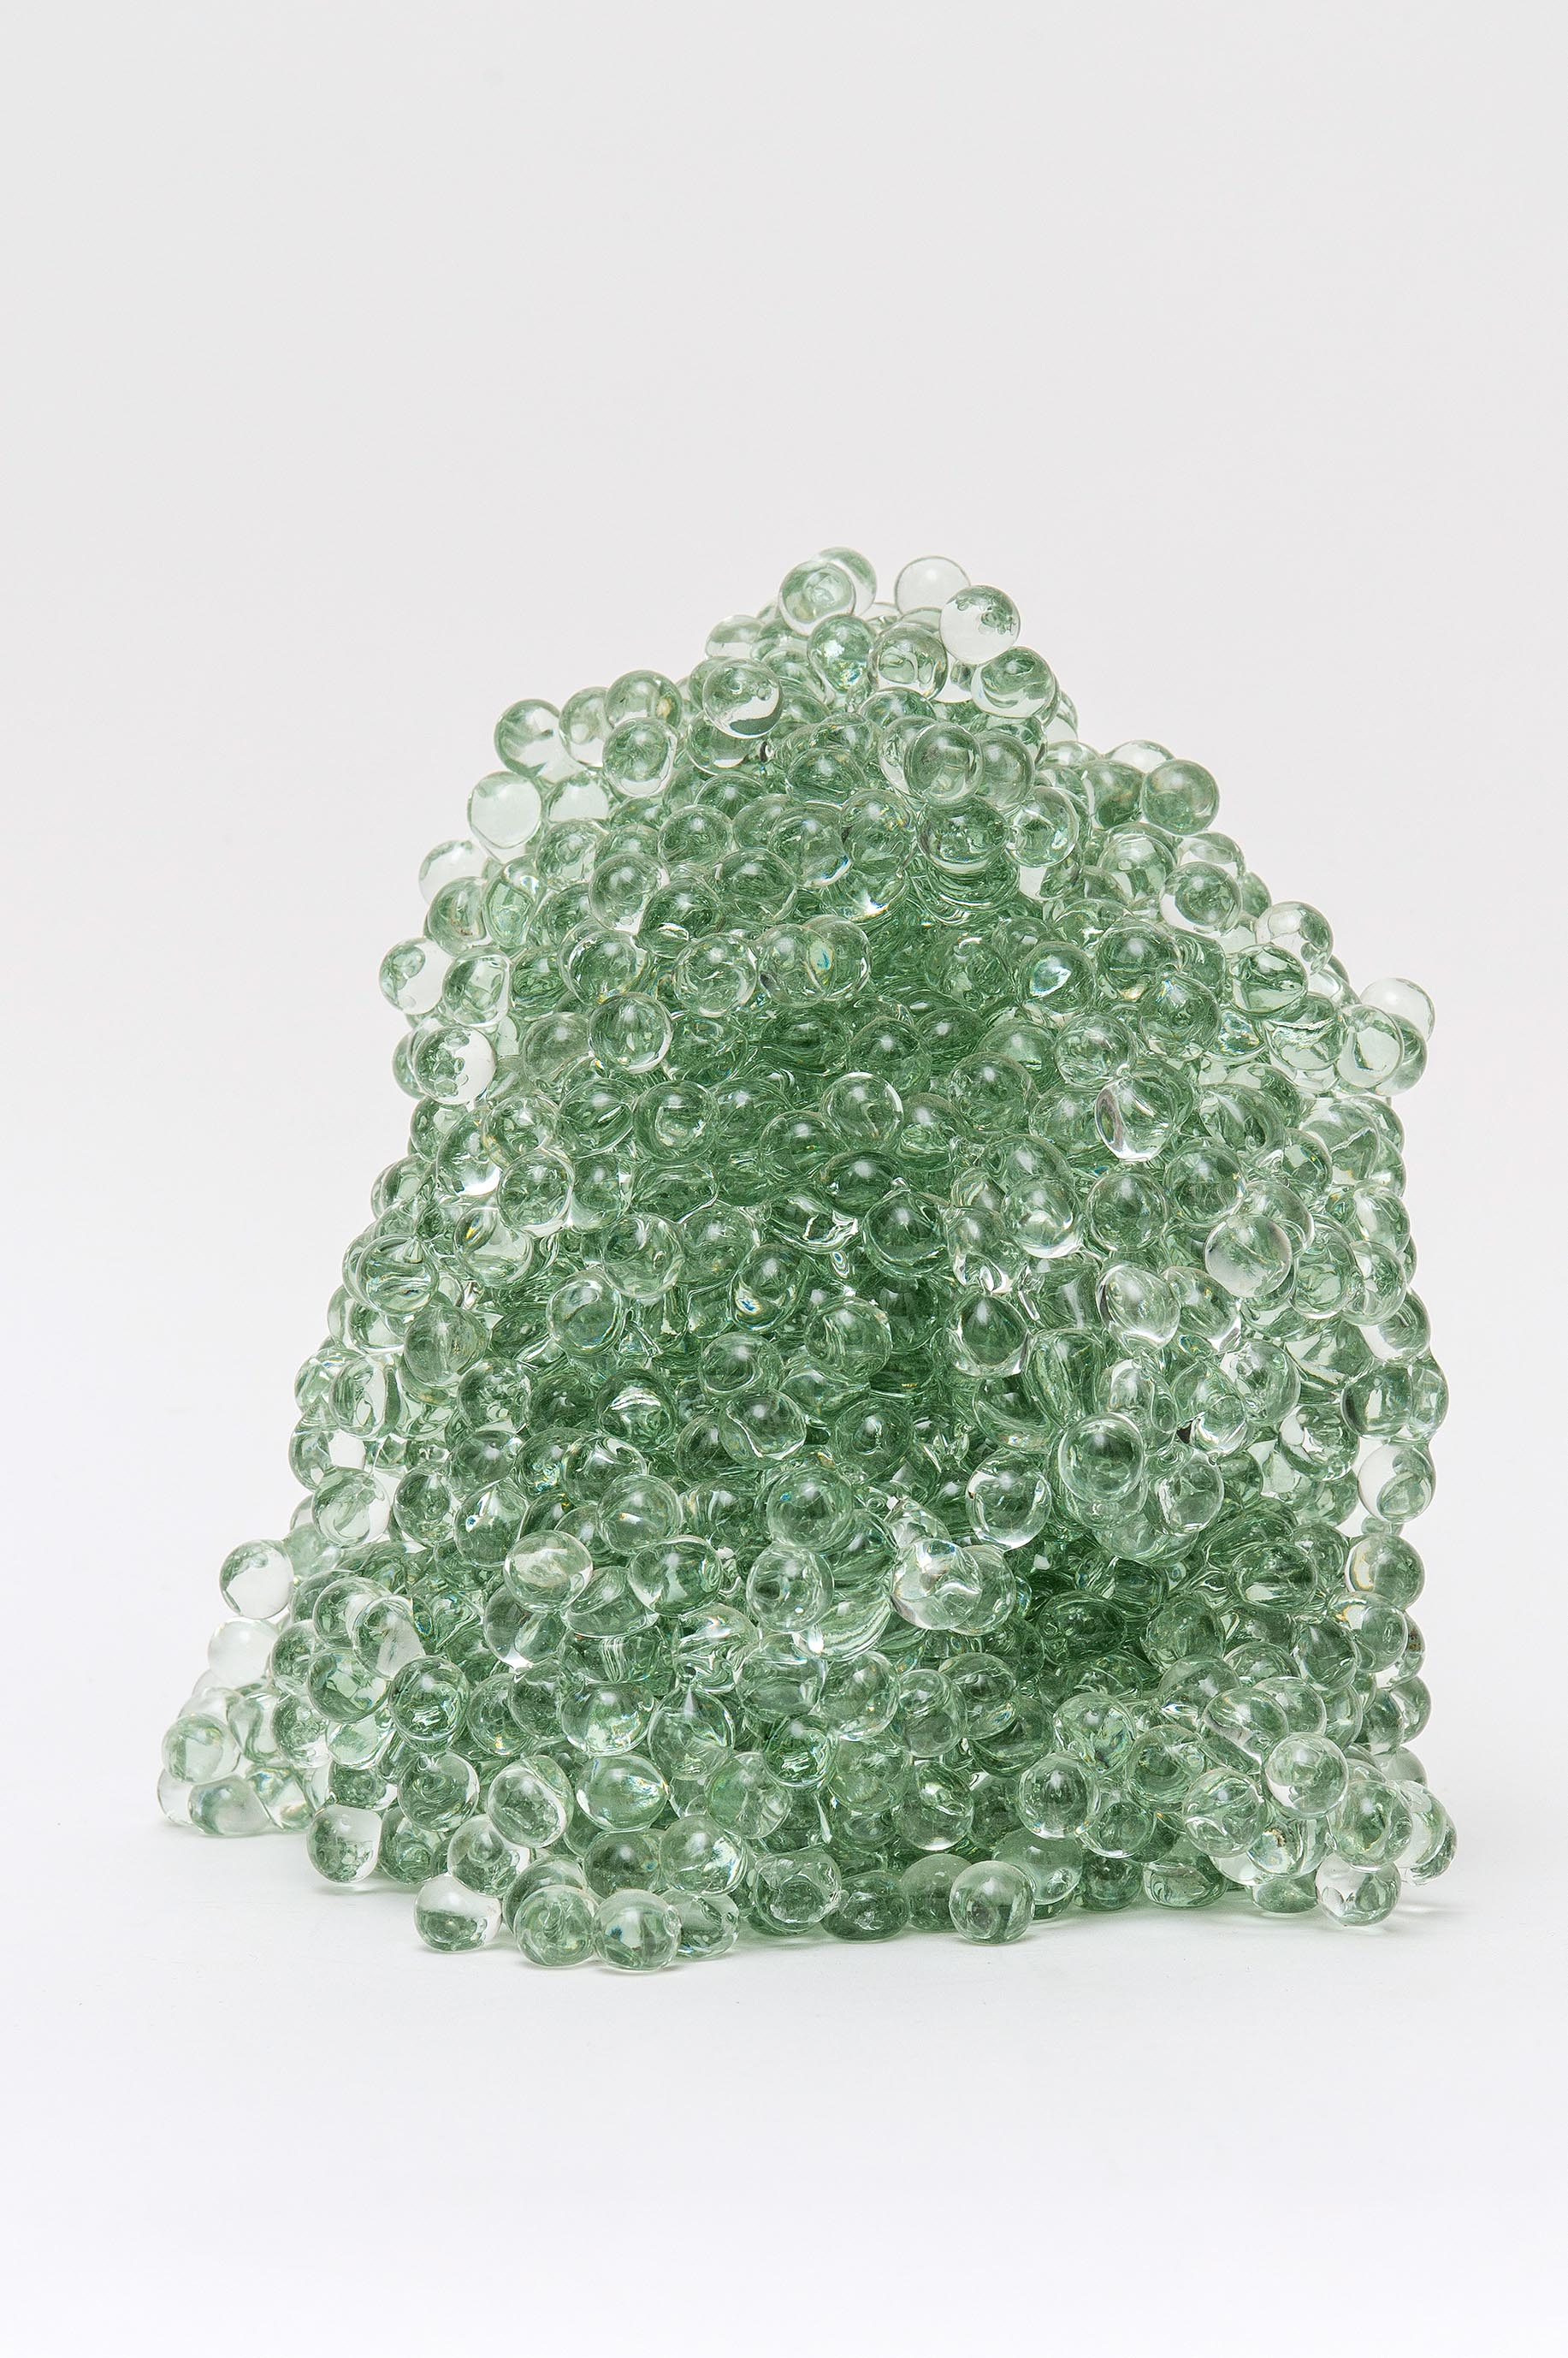 Glass No. 7 K, 2012